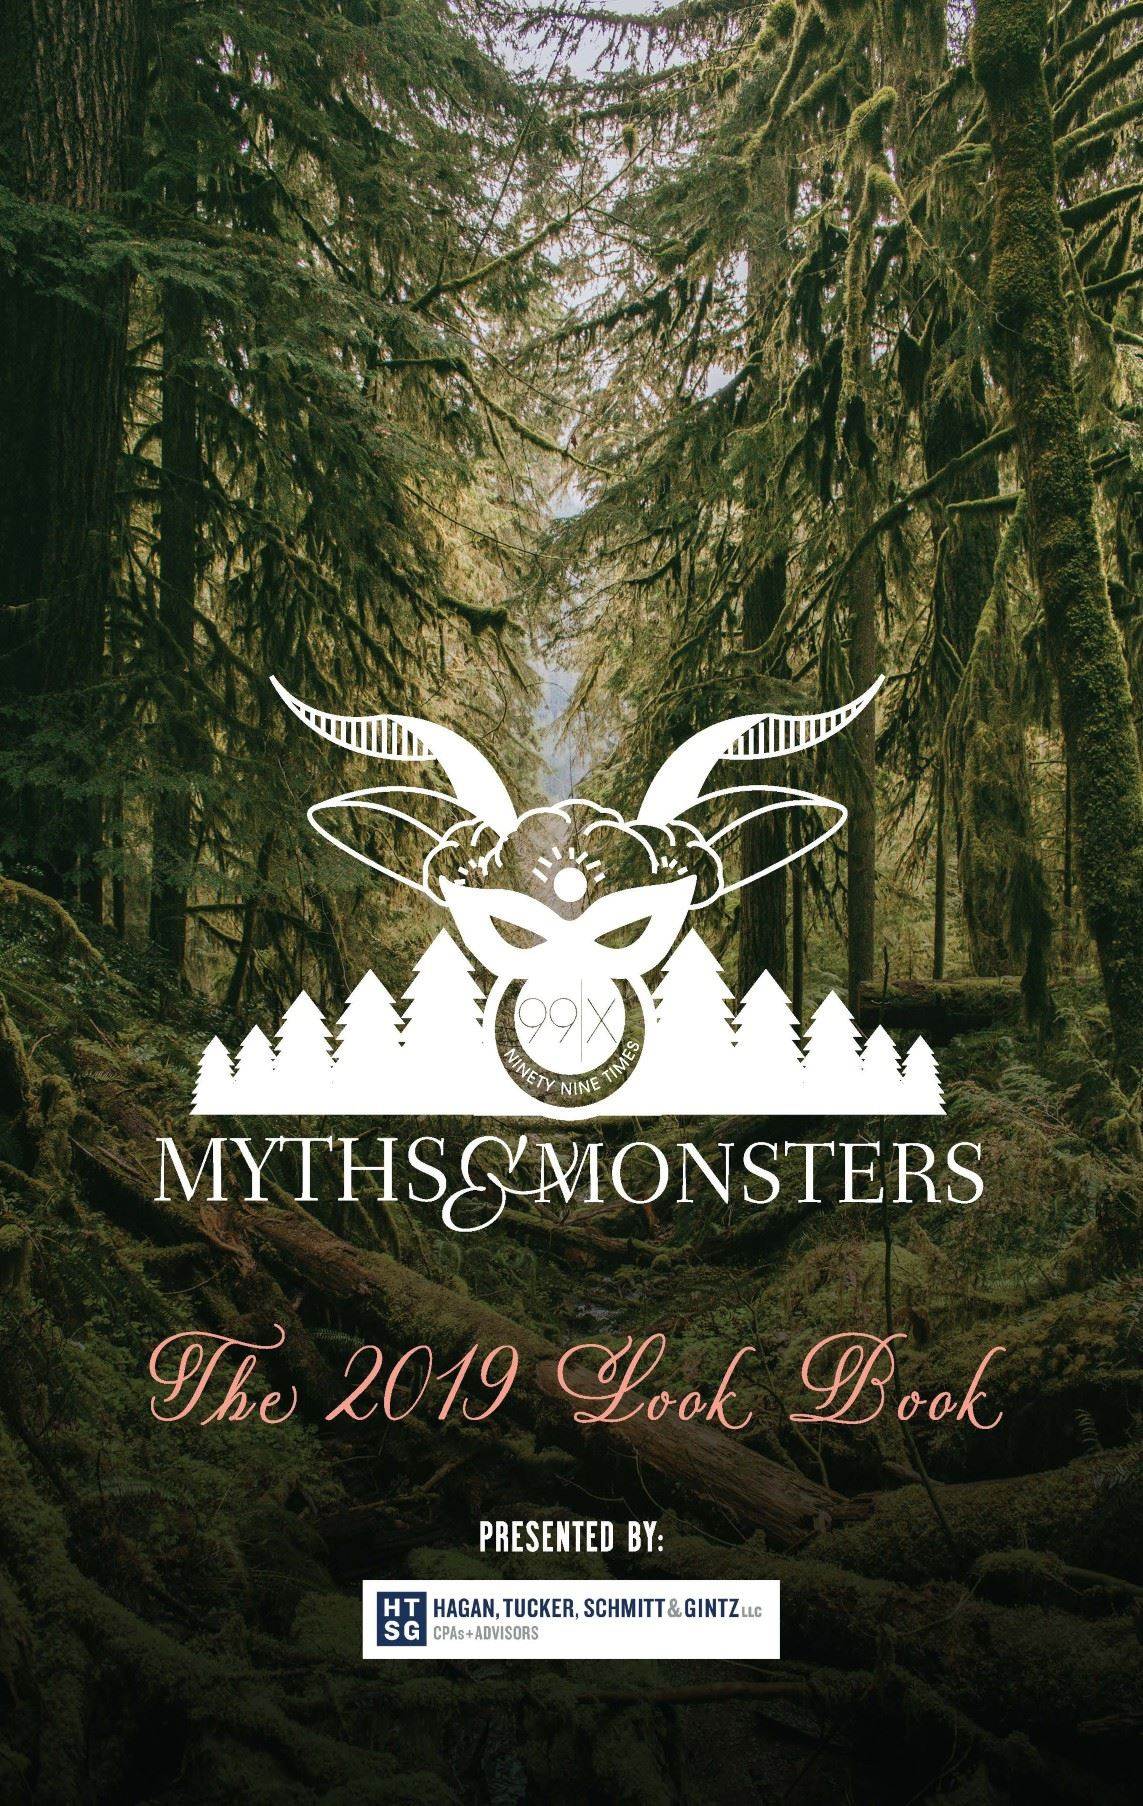 99x Myths and Monsters Look Book Cover featuring a woodland scene